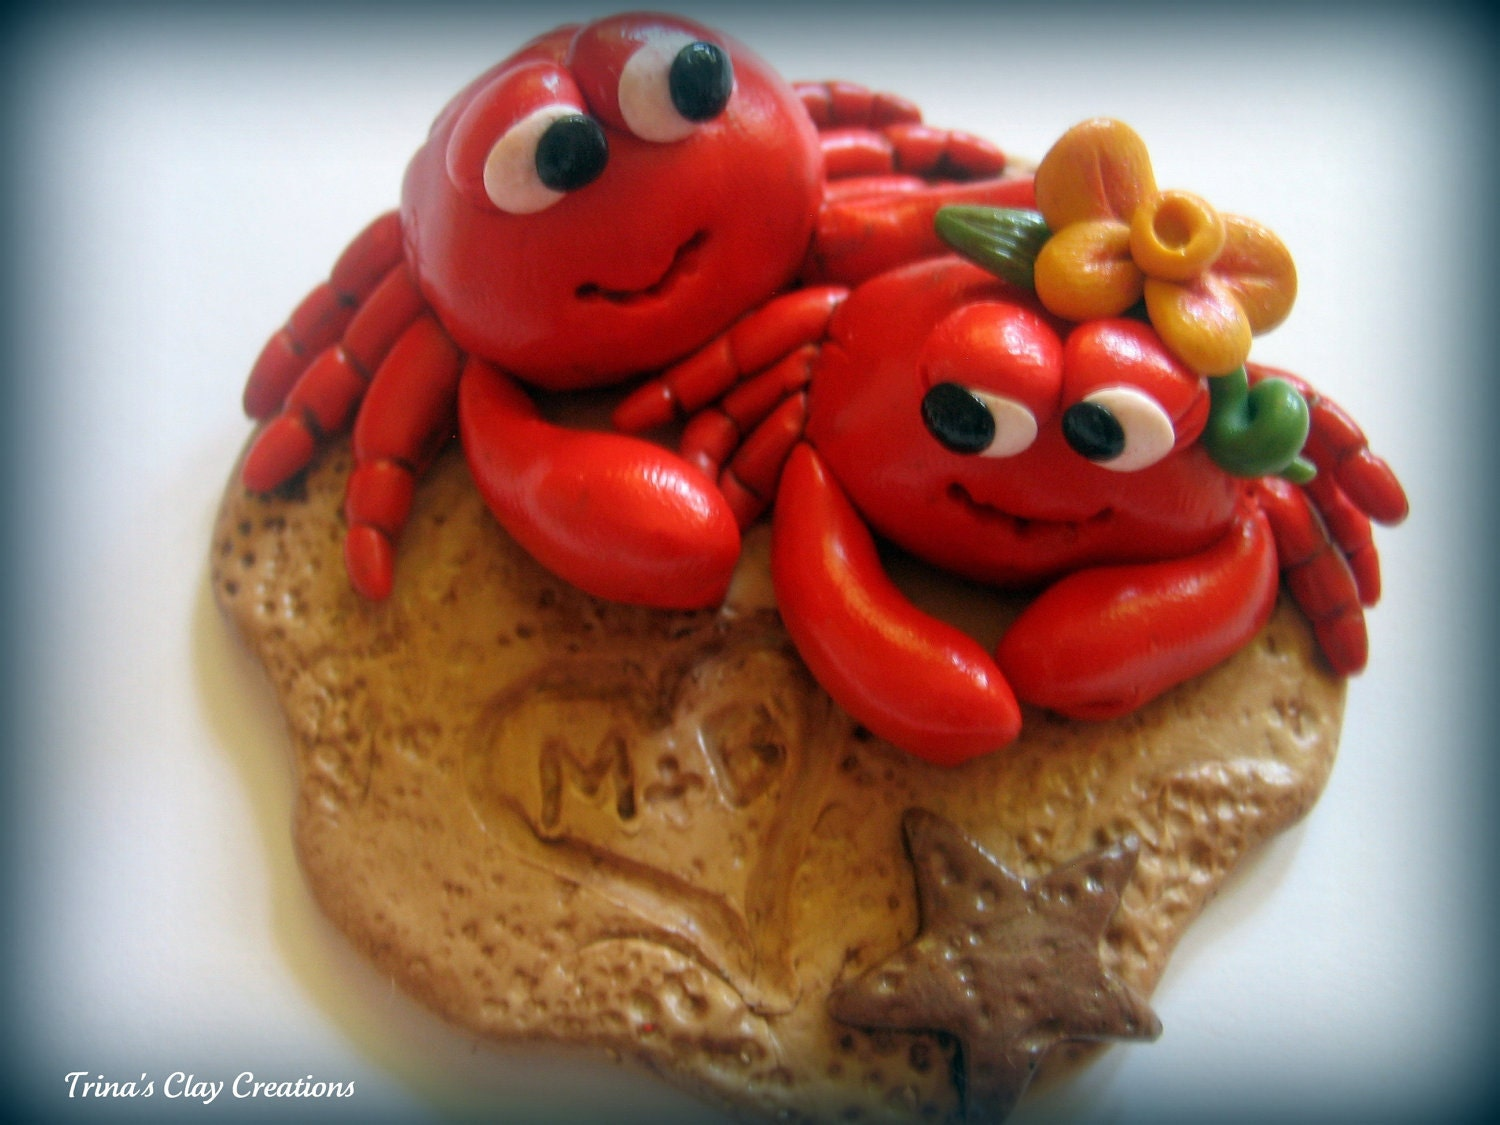 Wedding Cake Topper, Custom Polymer Clay Red Crabs in the Sand Wedding/Anniversary Keepsake - trinasclaycreations